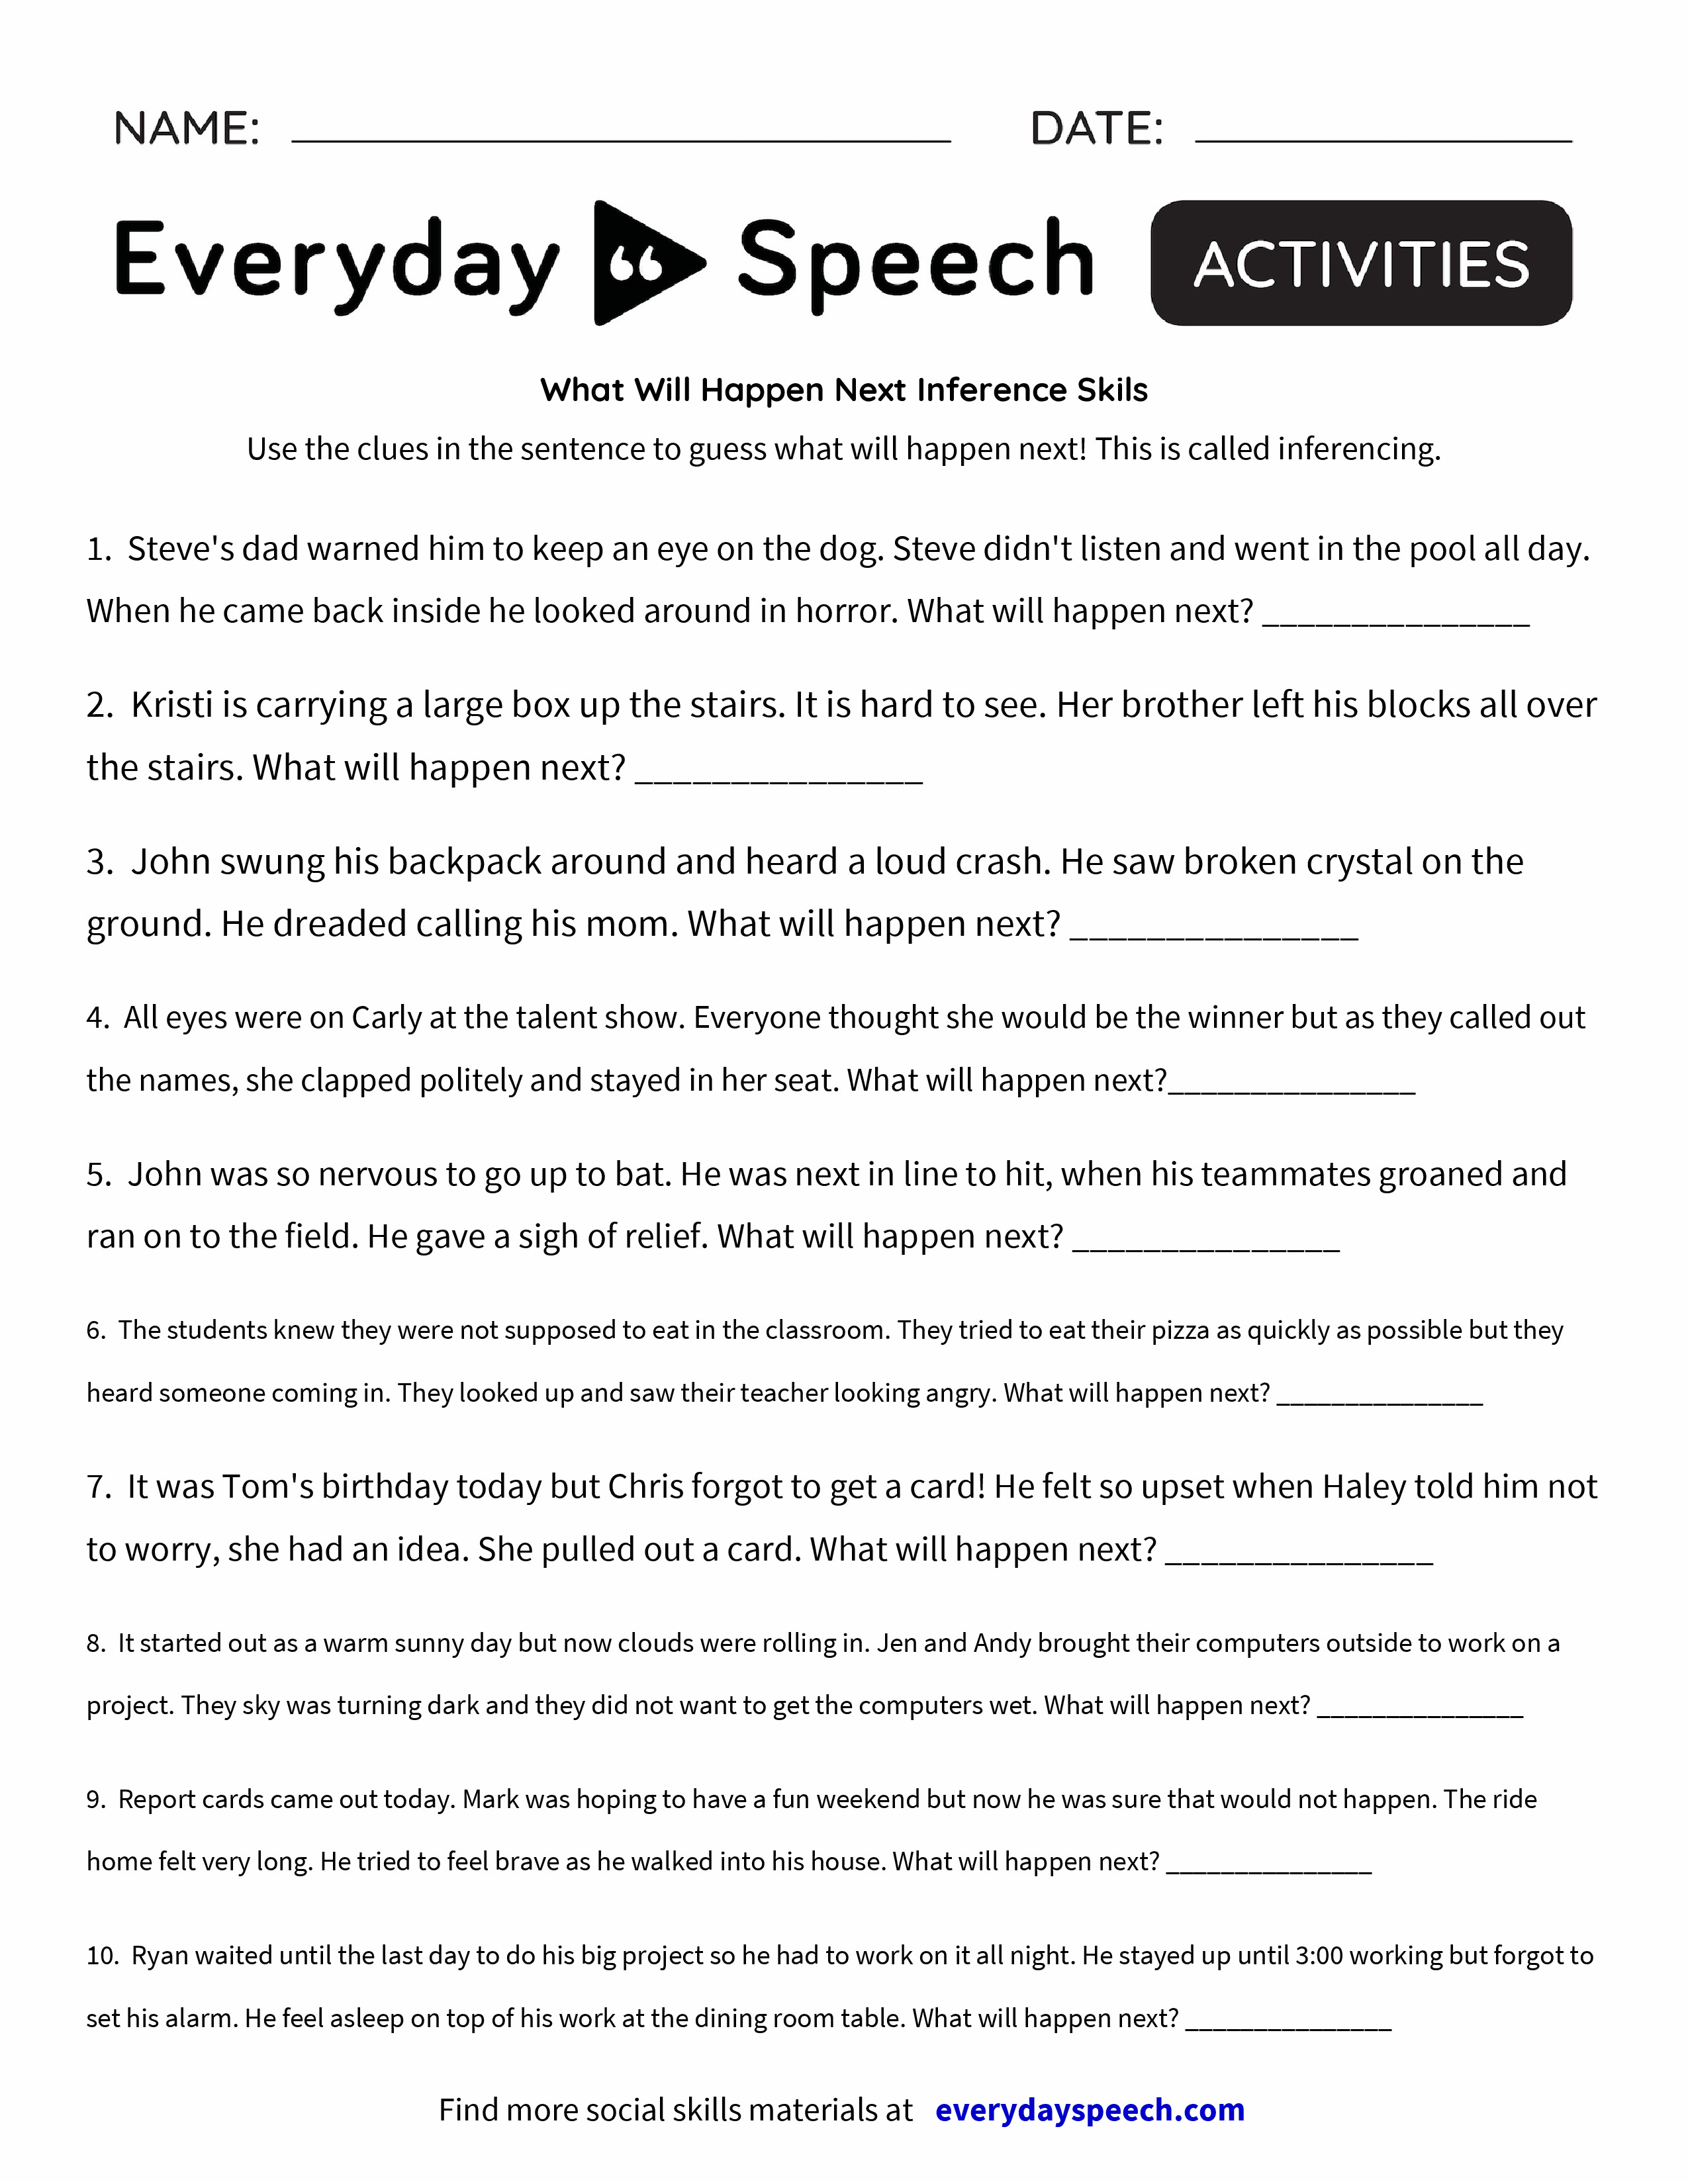 Free Worksheet Inference Worksheets Pdf Phinixi Worksheets – Inference Worksheets Pdf